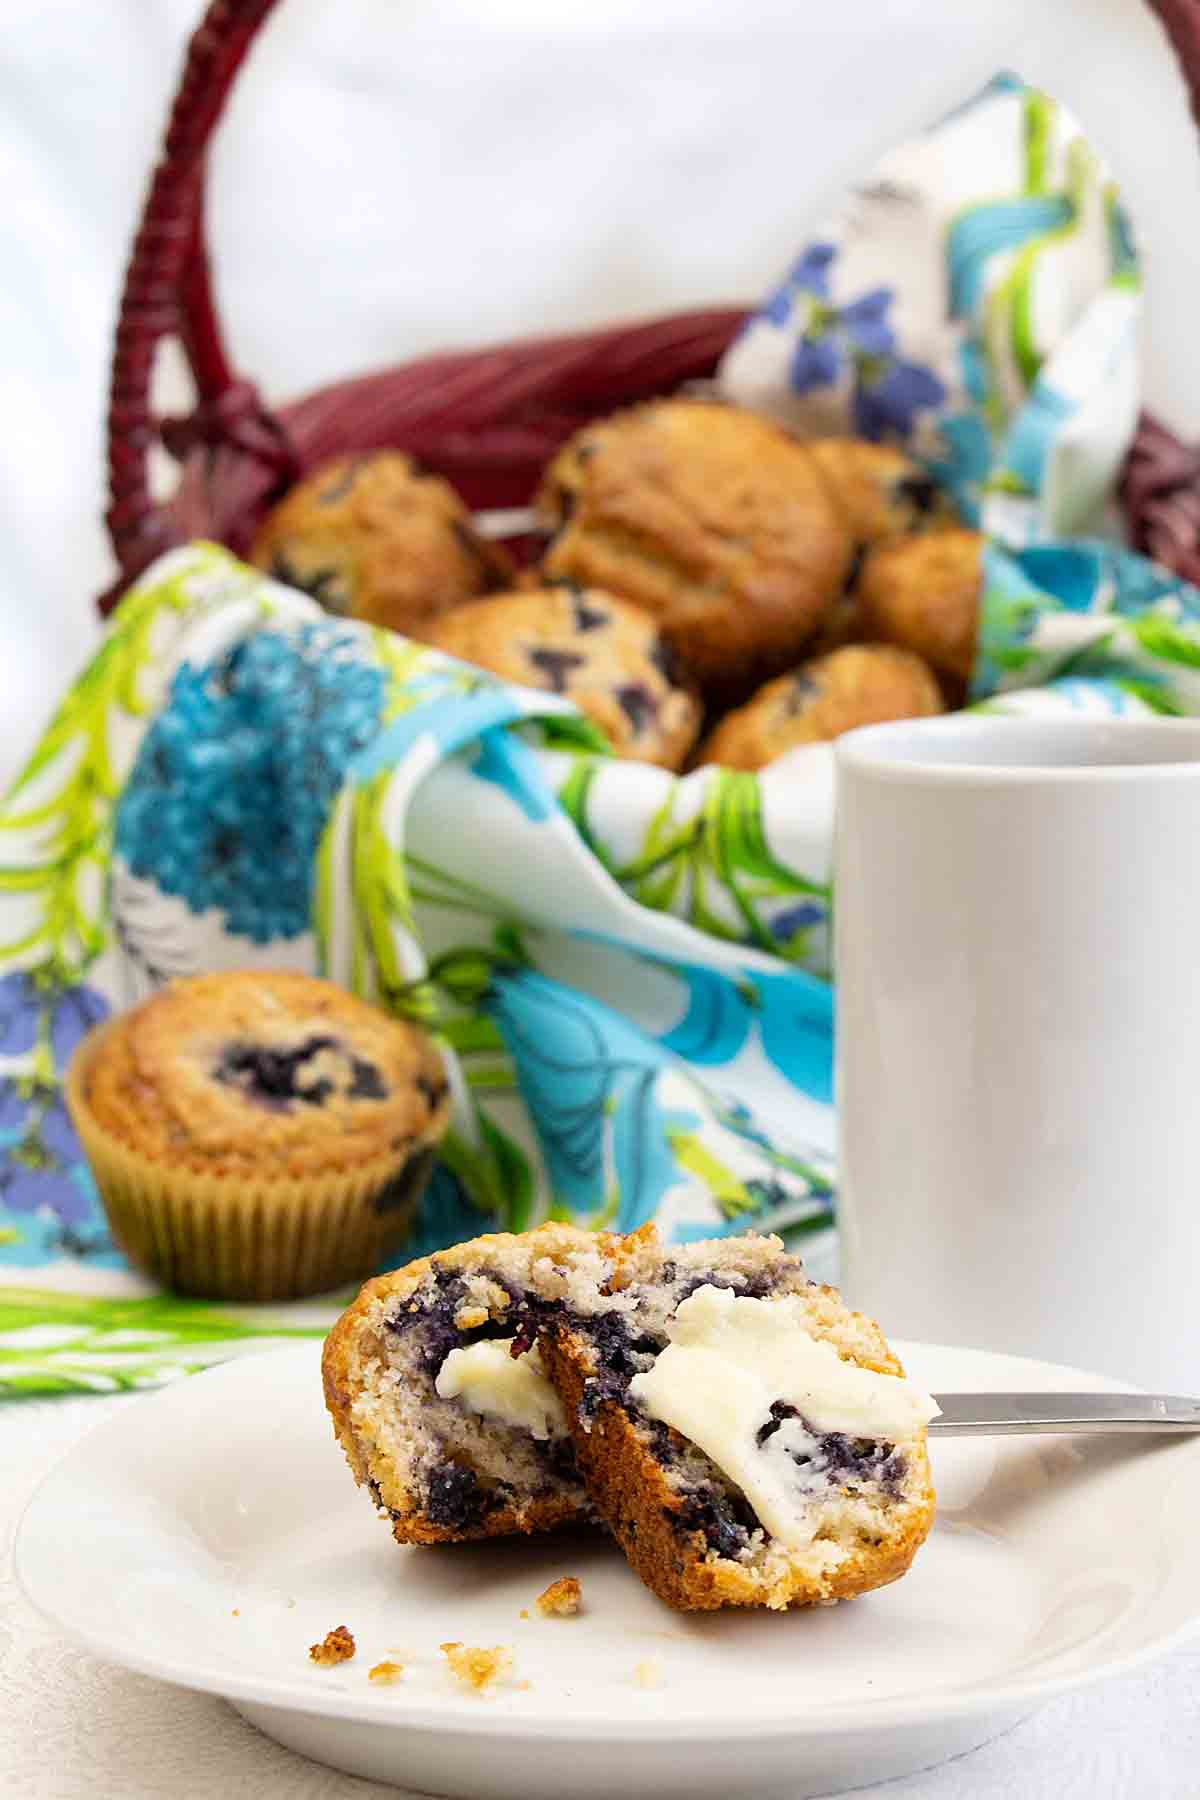 Fruity with a hint of sweetness, Betty Crocker Blueberry Muffins are great for brunch or snacking. Or an artisan bread basket with dinner!